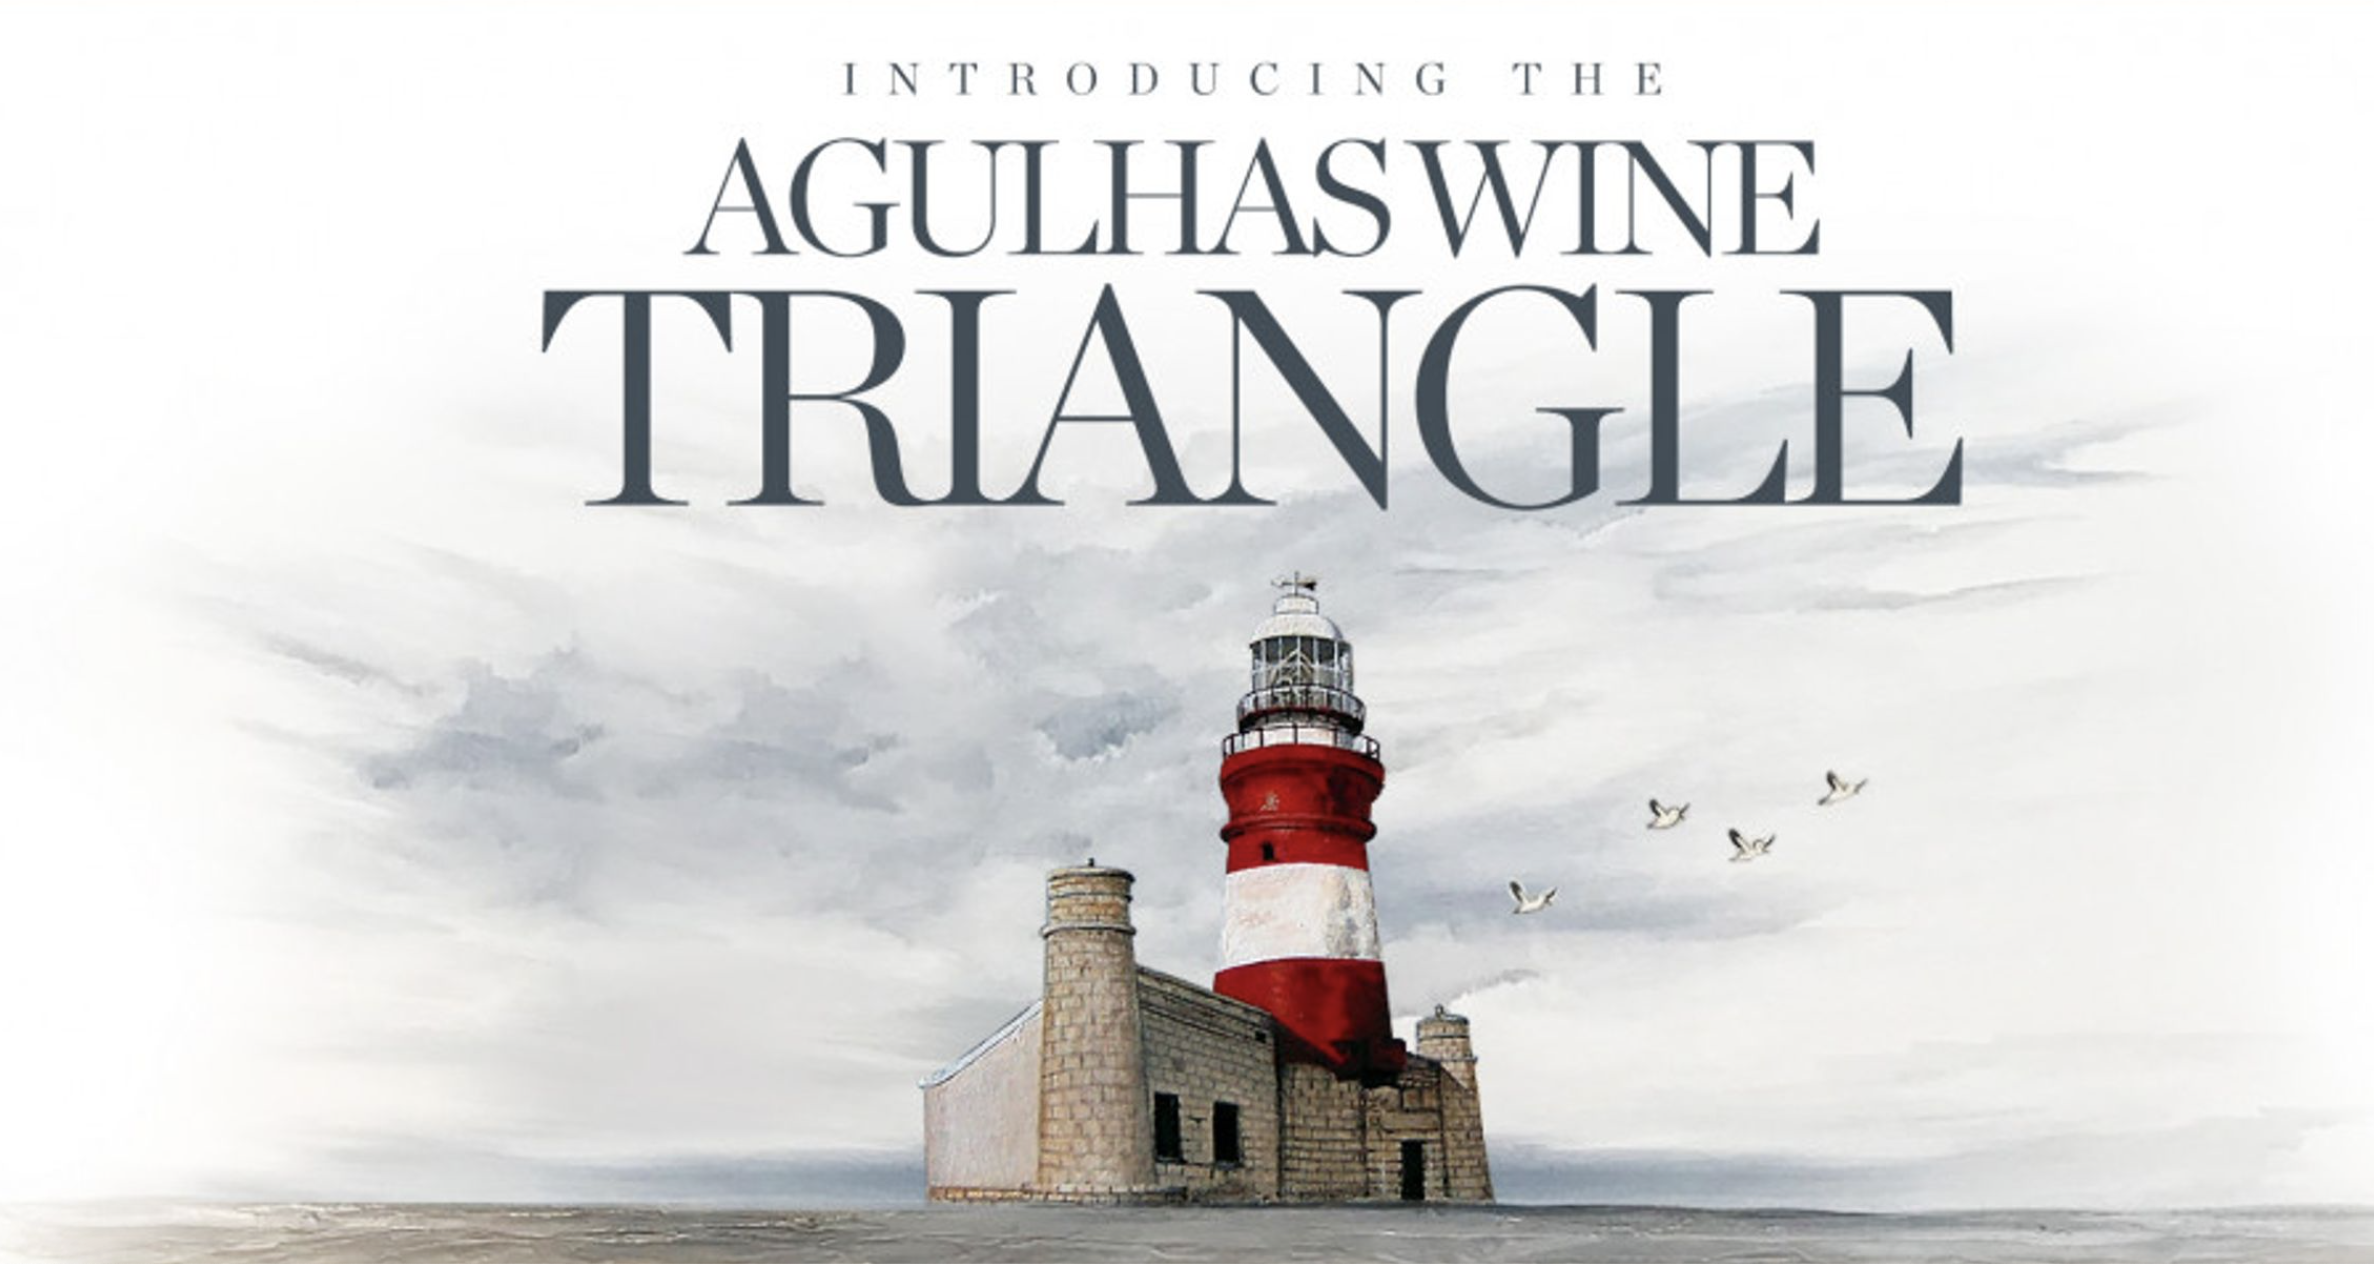 Introducing The Agulhas Wine Triangle